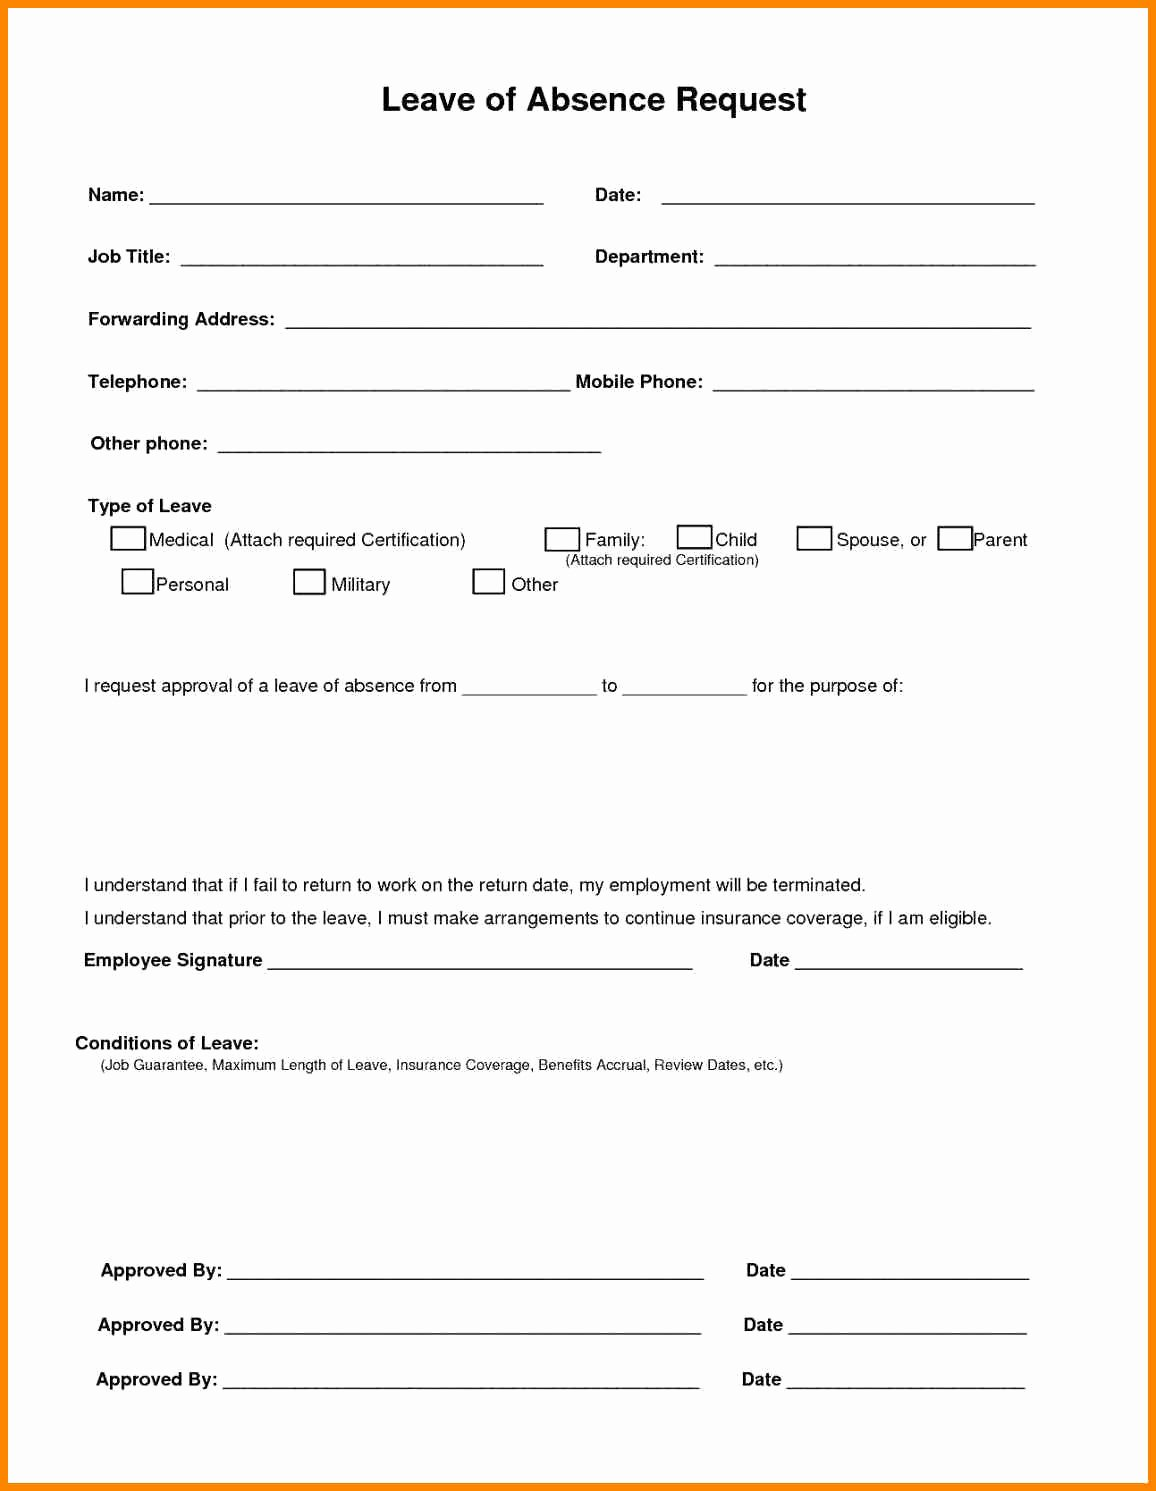 Sick Leave form Template Elegant Employee Sick Leave form Template – Radiofama